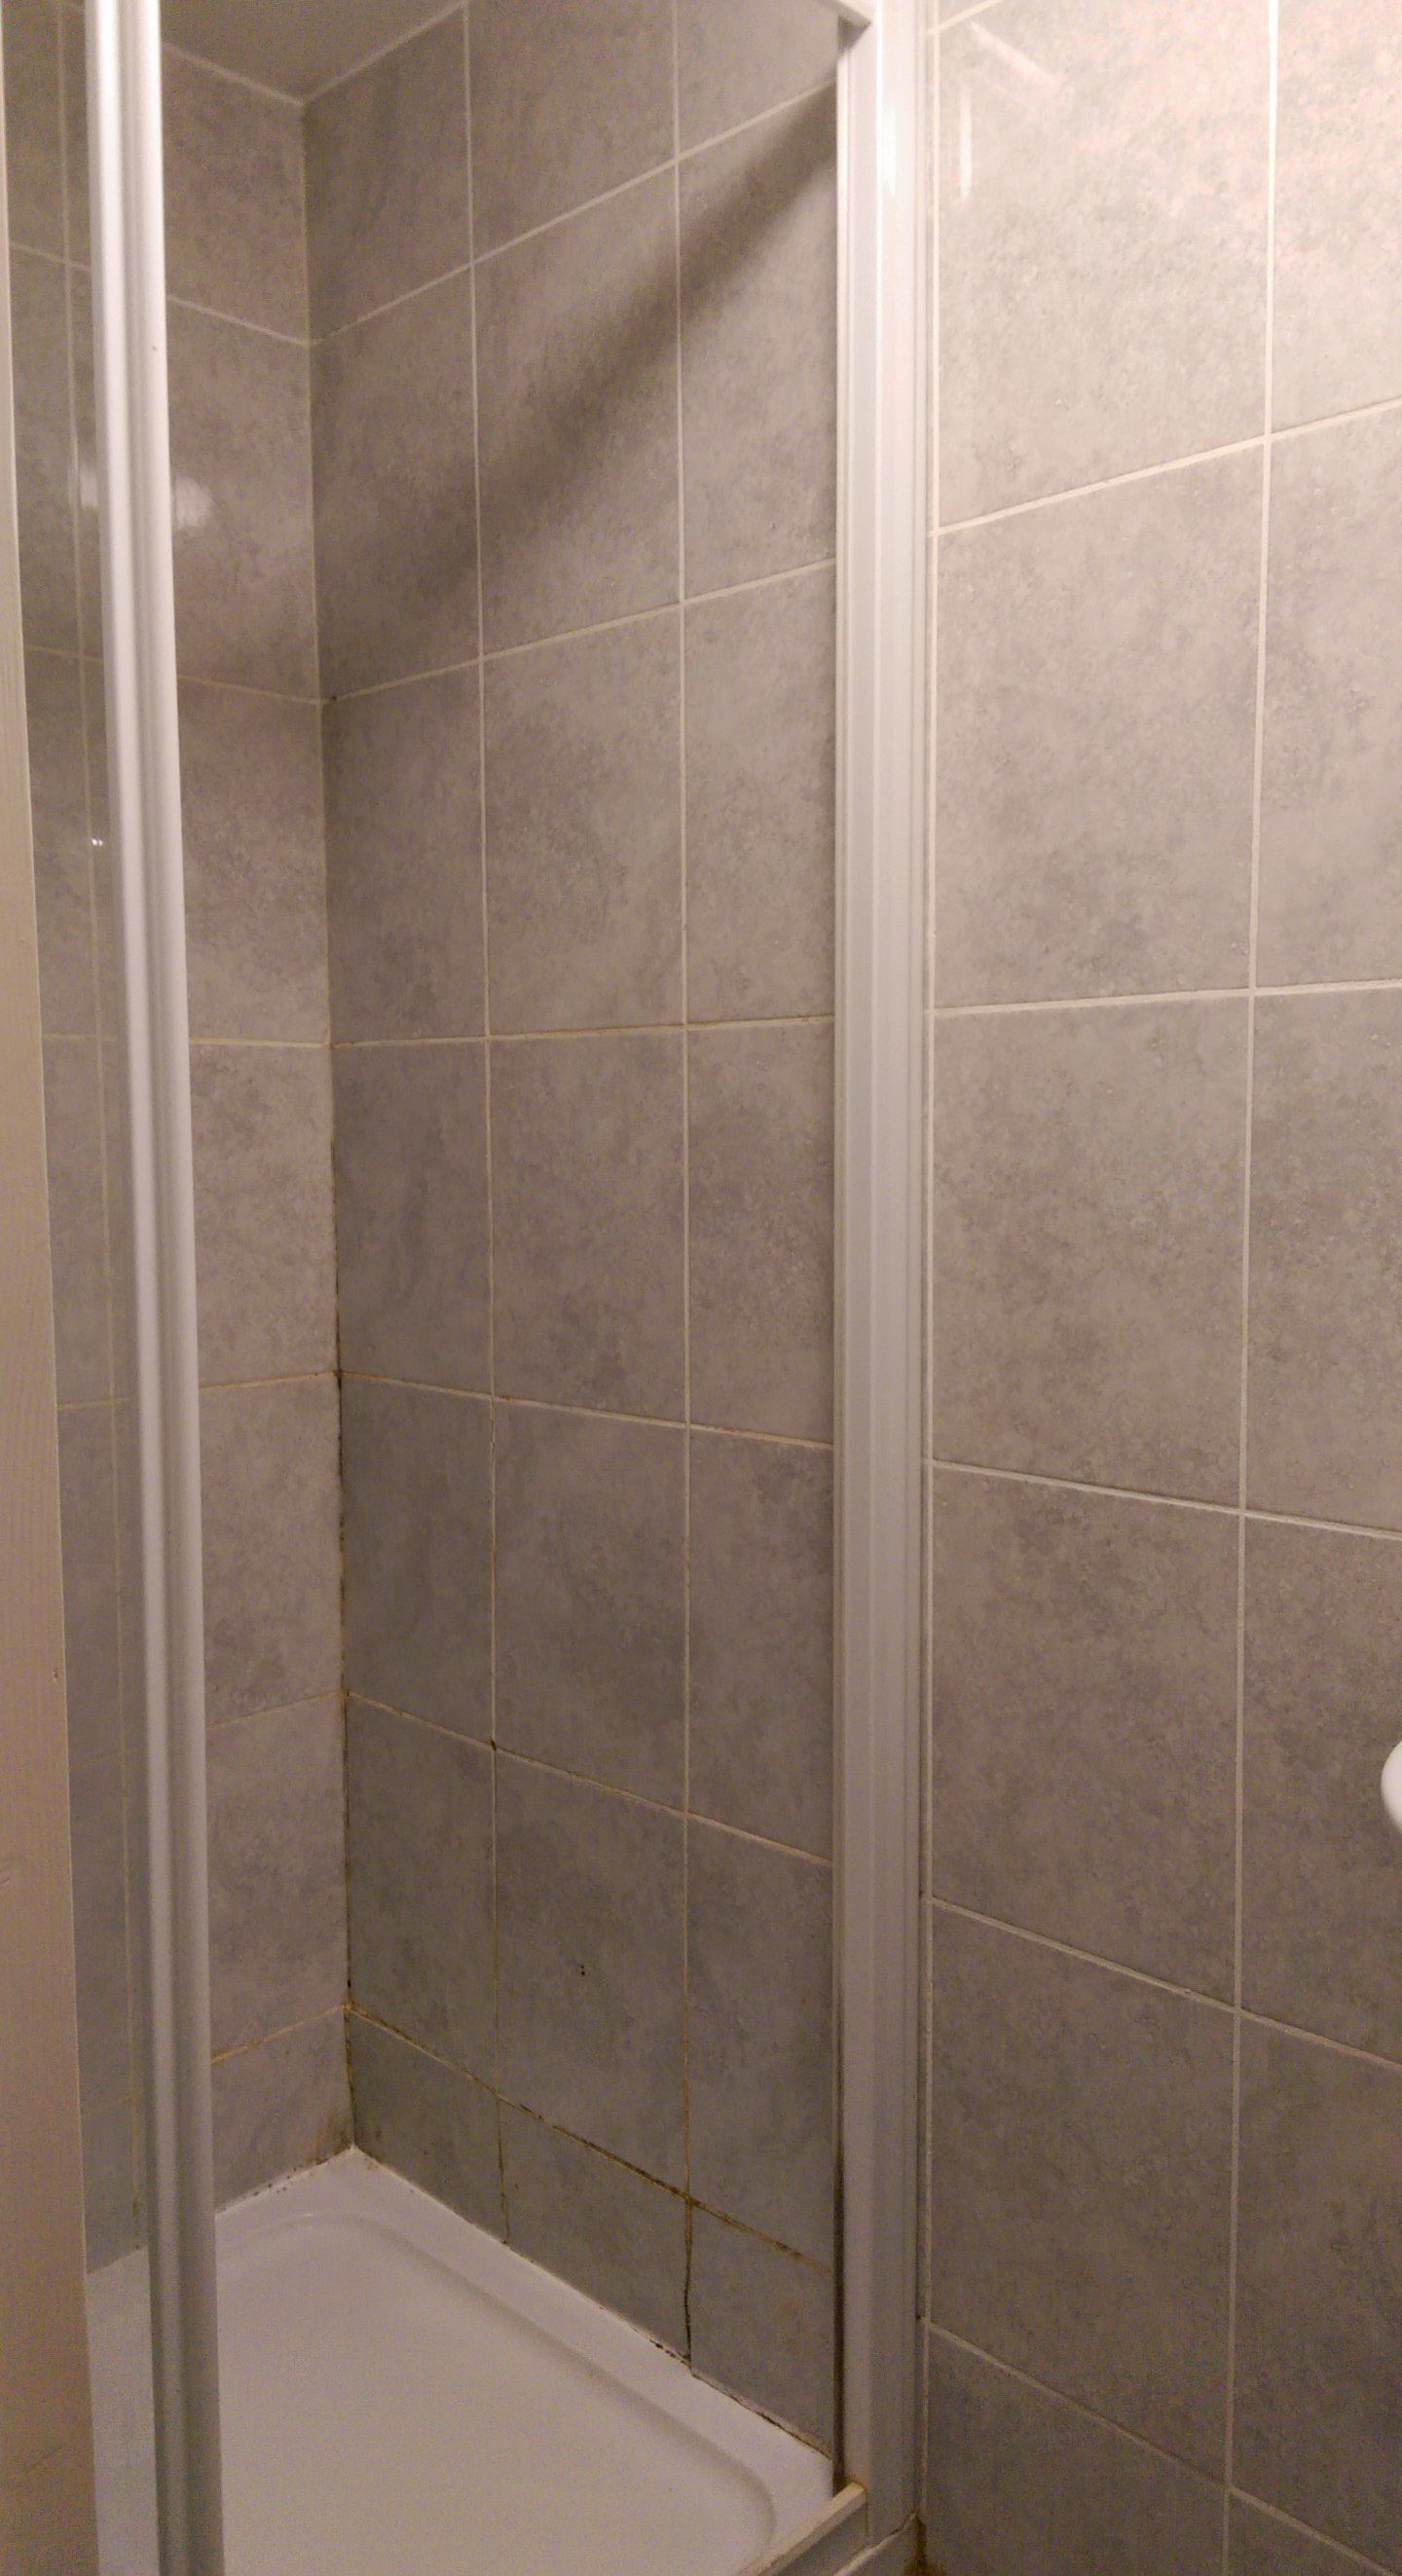 1 bedroom shared house To Let in Willesden - Communal Shower